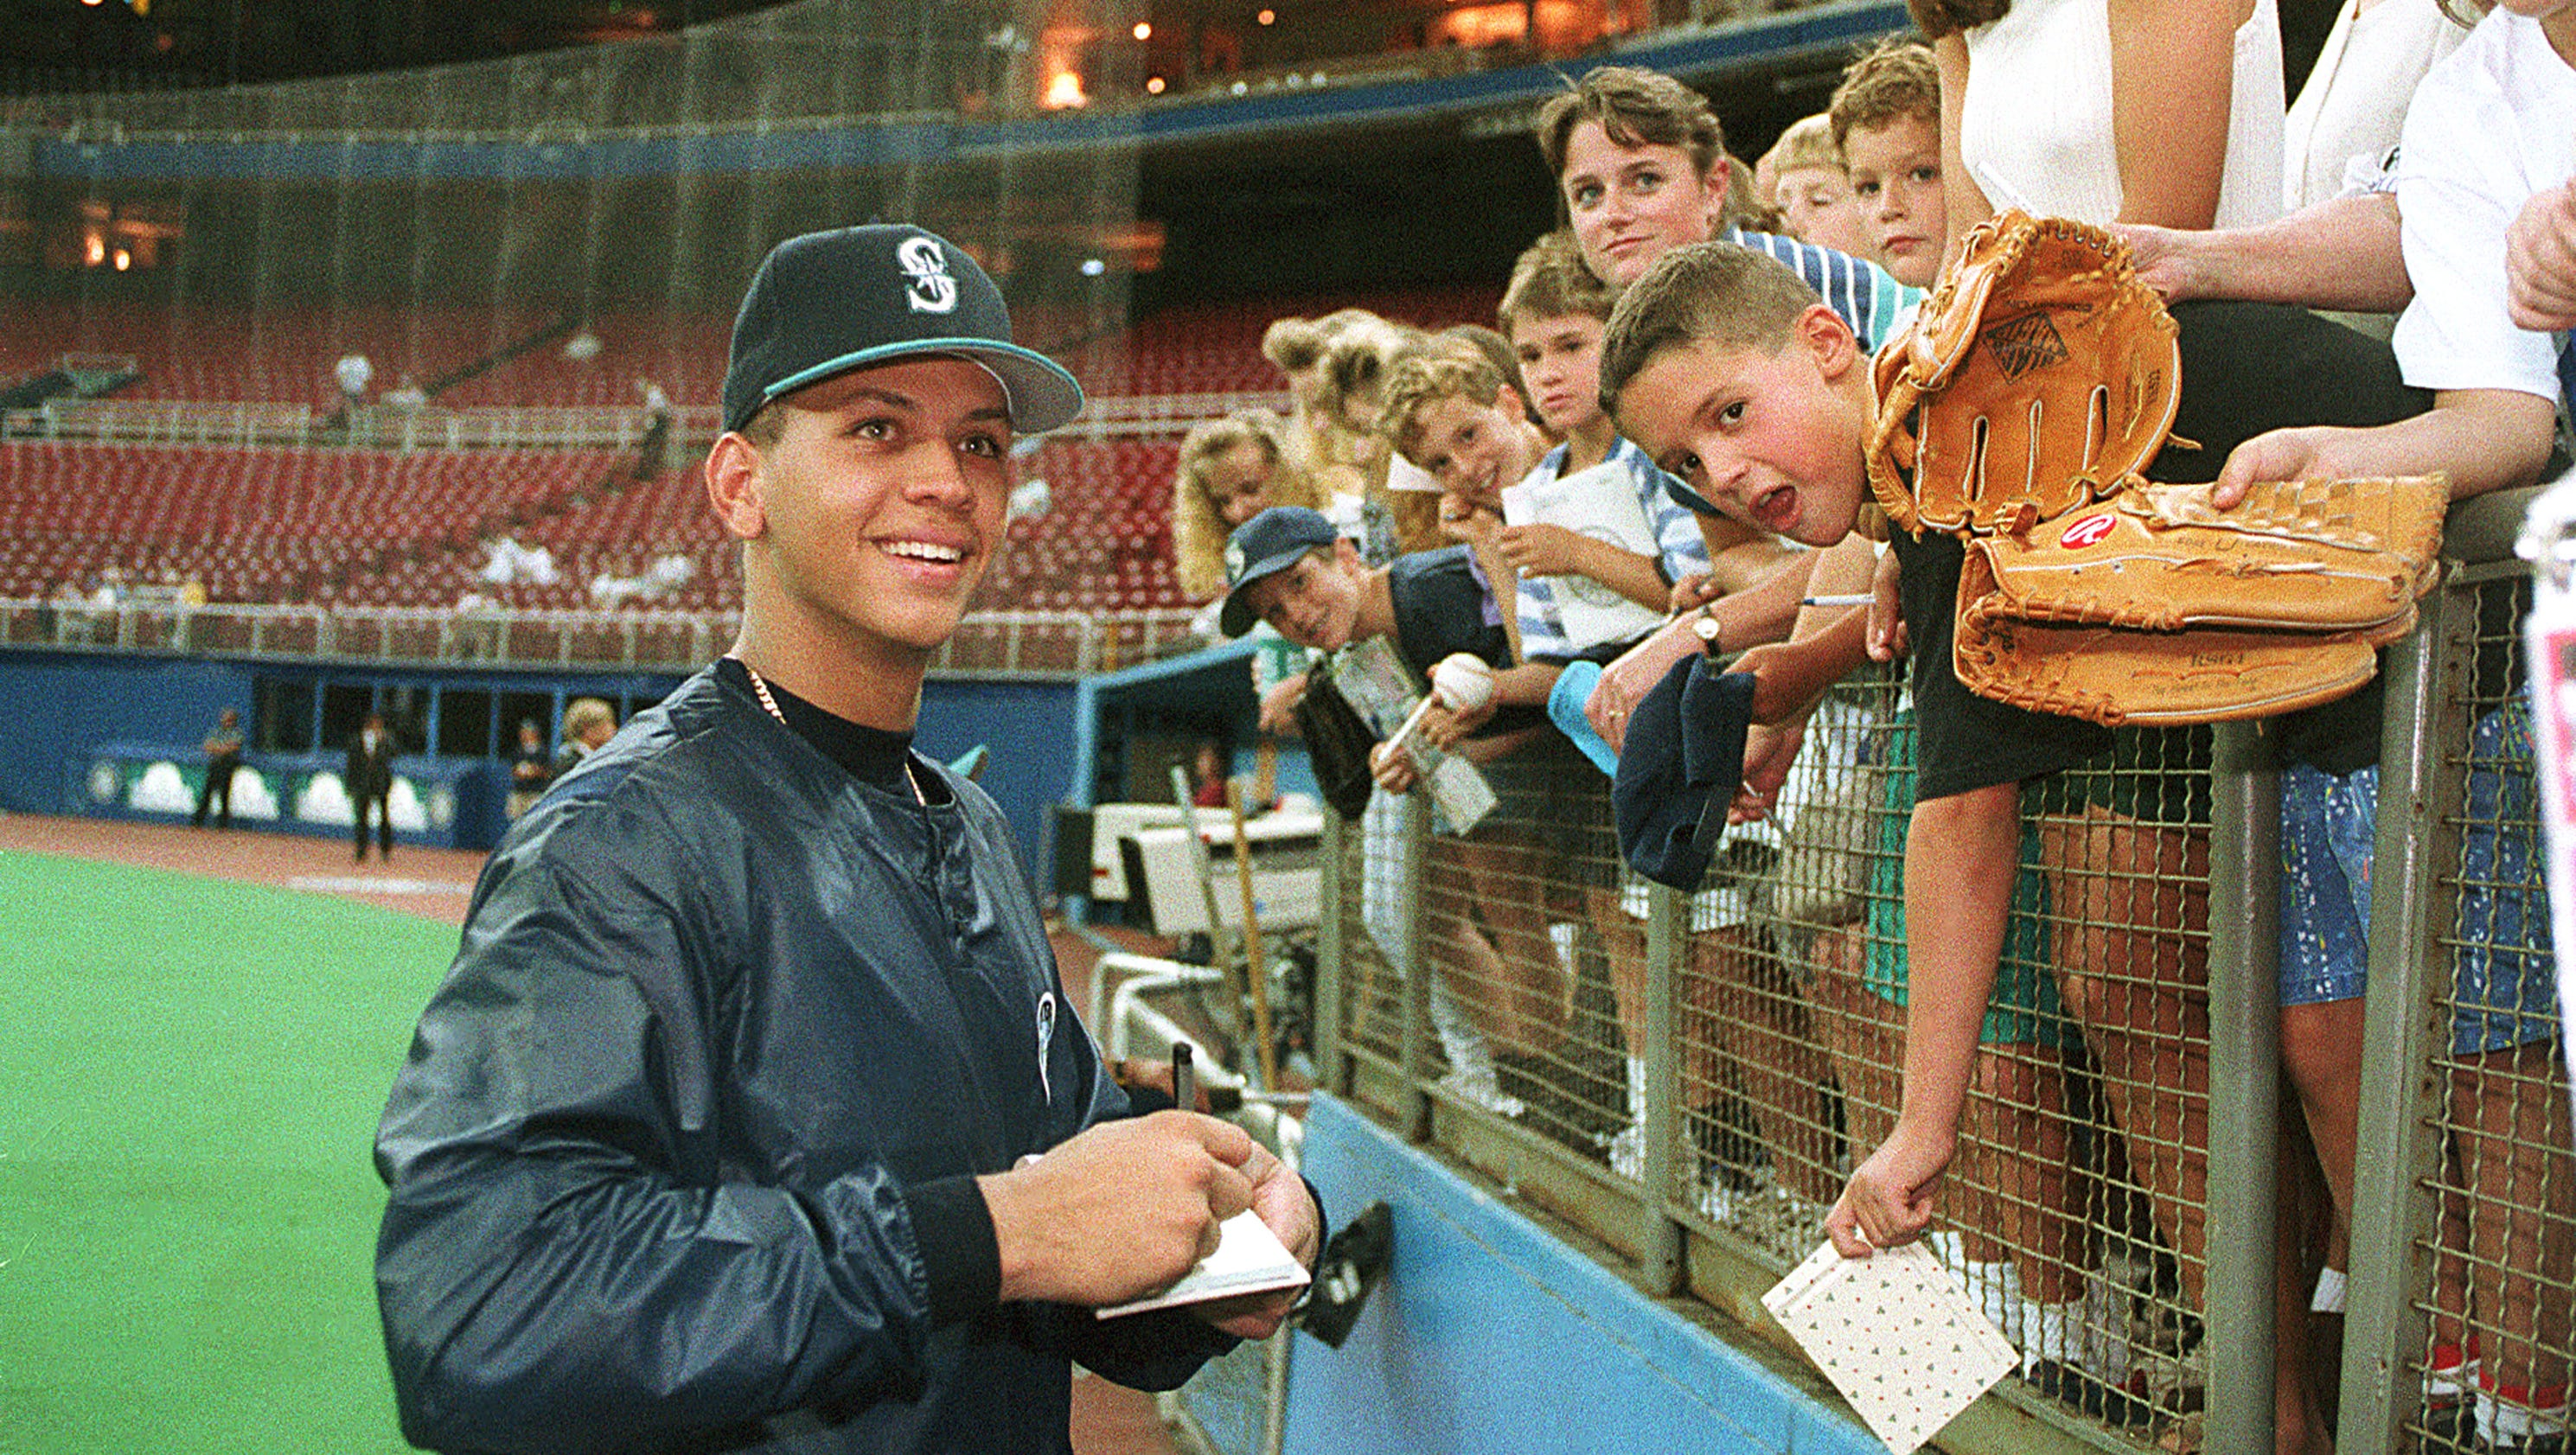 636636277652600215-ap-the-life-and-times-of-a-rod-baseball-57447536